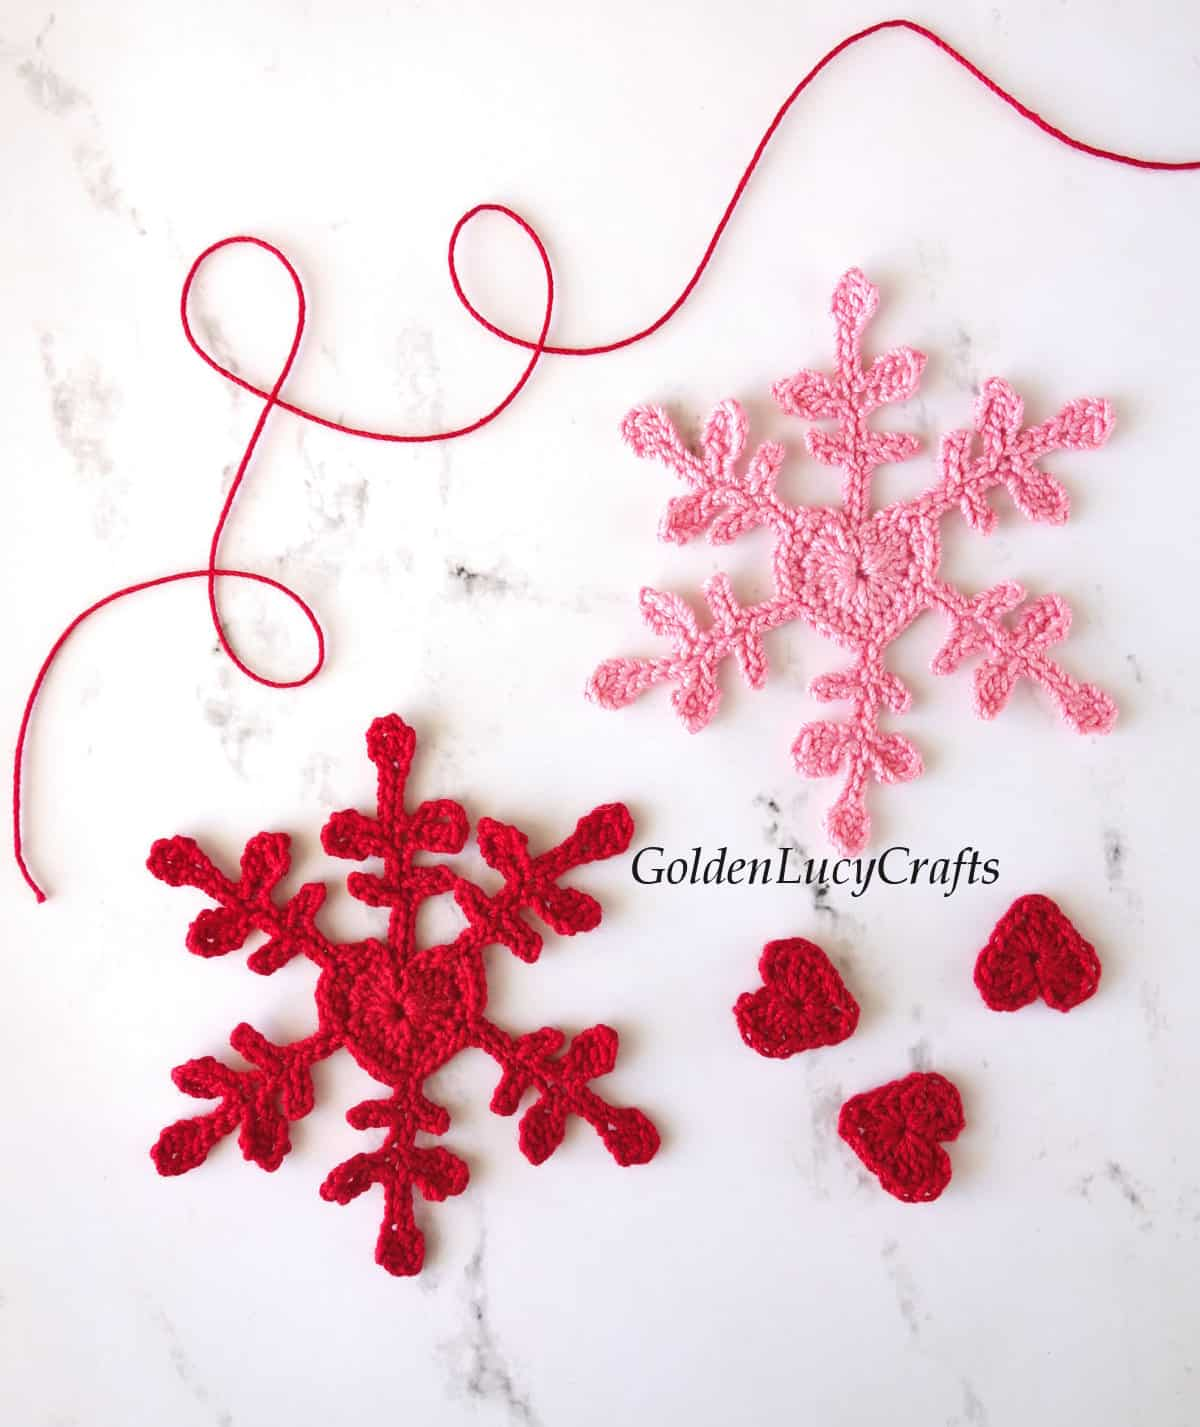 Red and pink crocheted snowflakes with heart center, three small red hearts